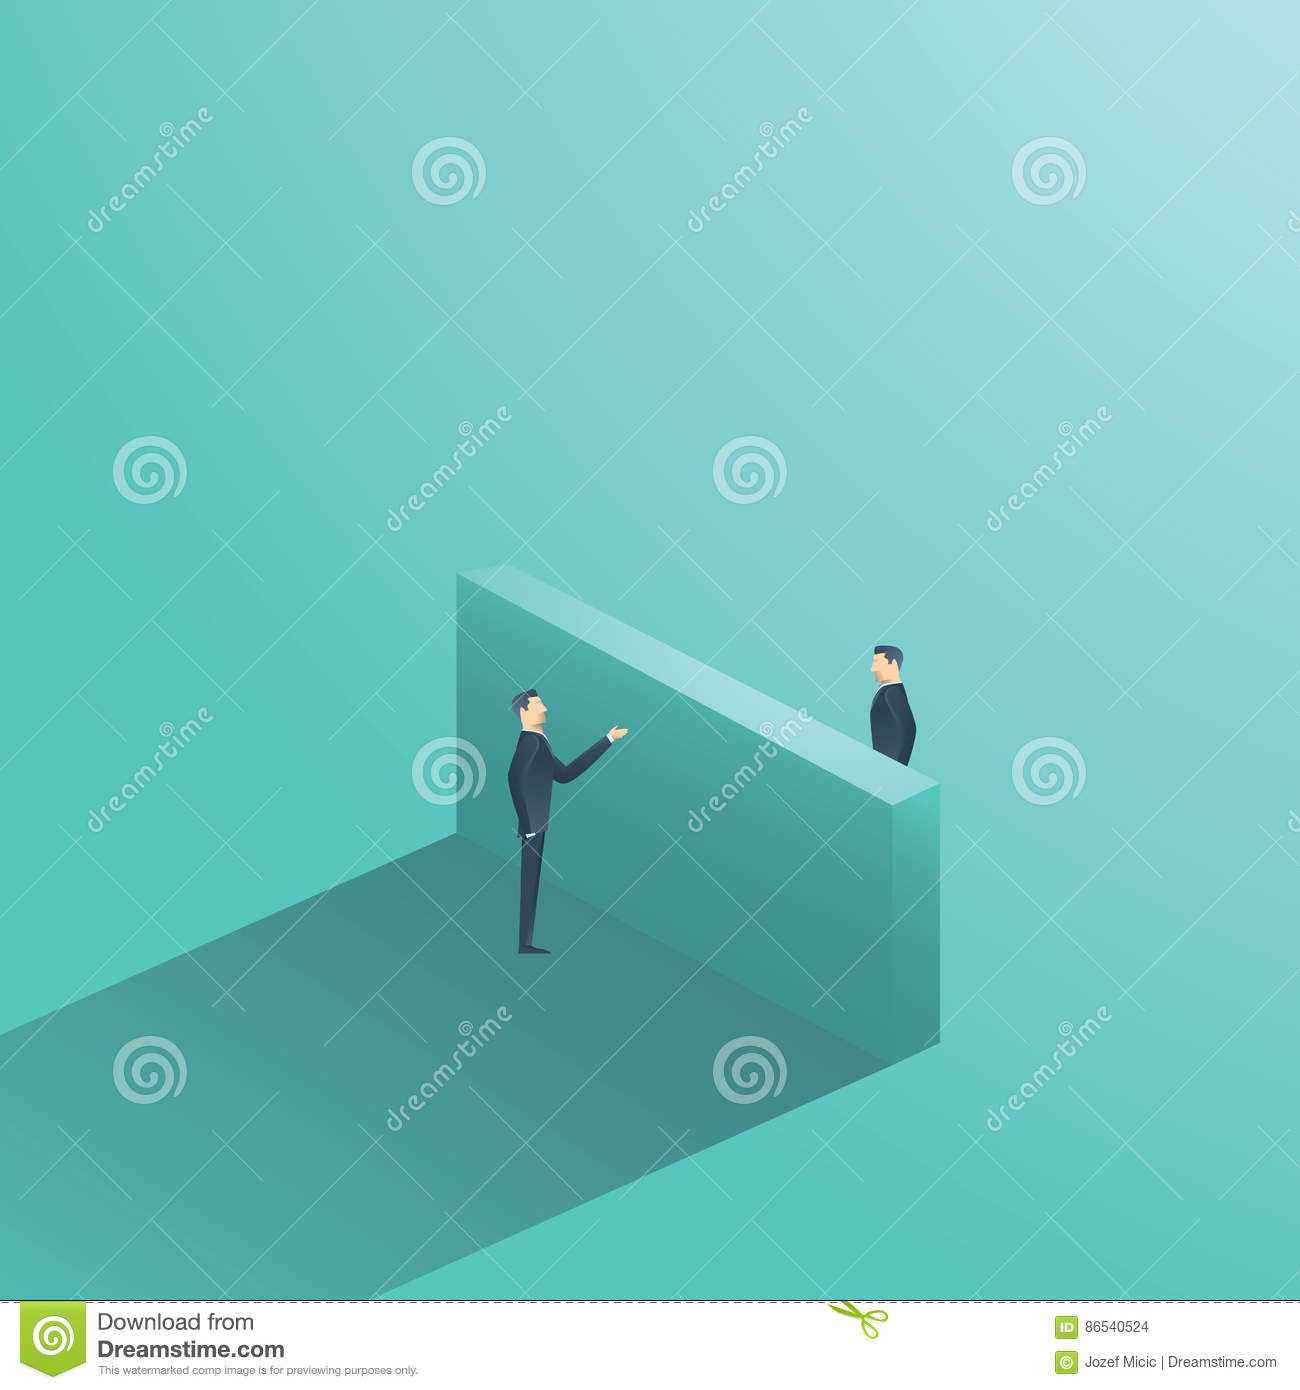 Business negotiation vector concept illustration with two businessman having conversation over the wall. Symbol of